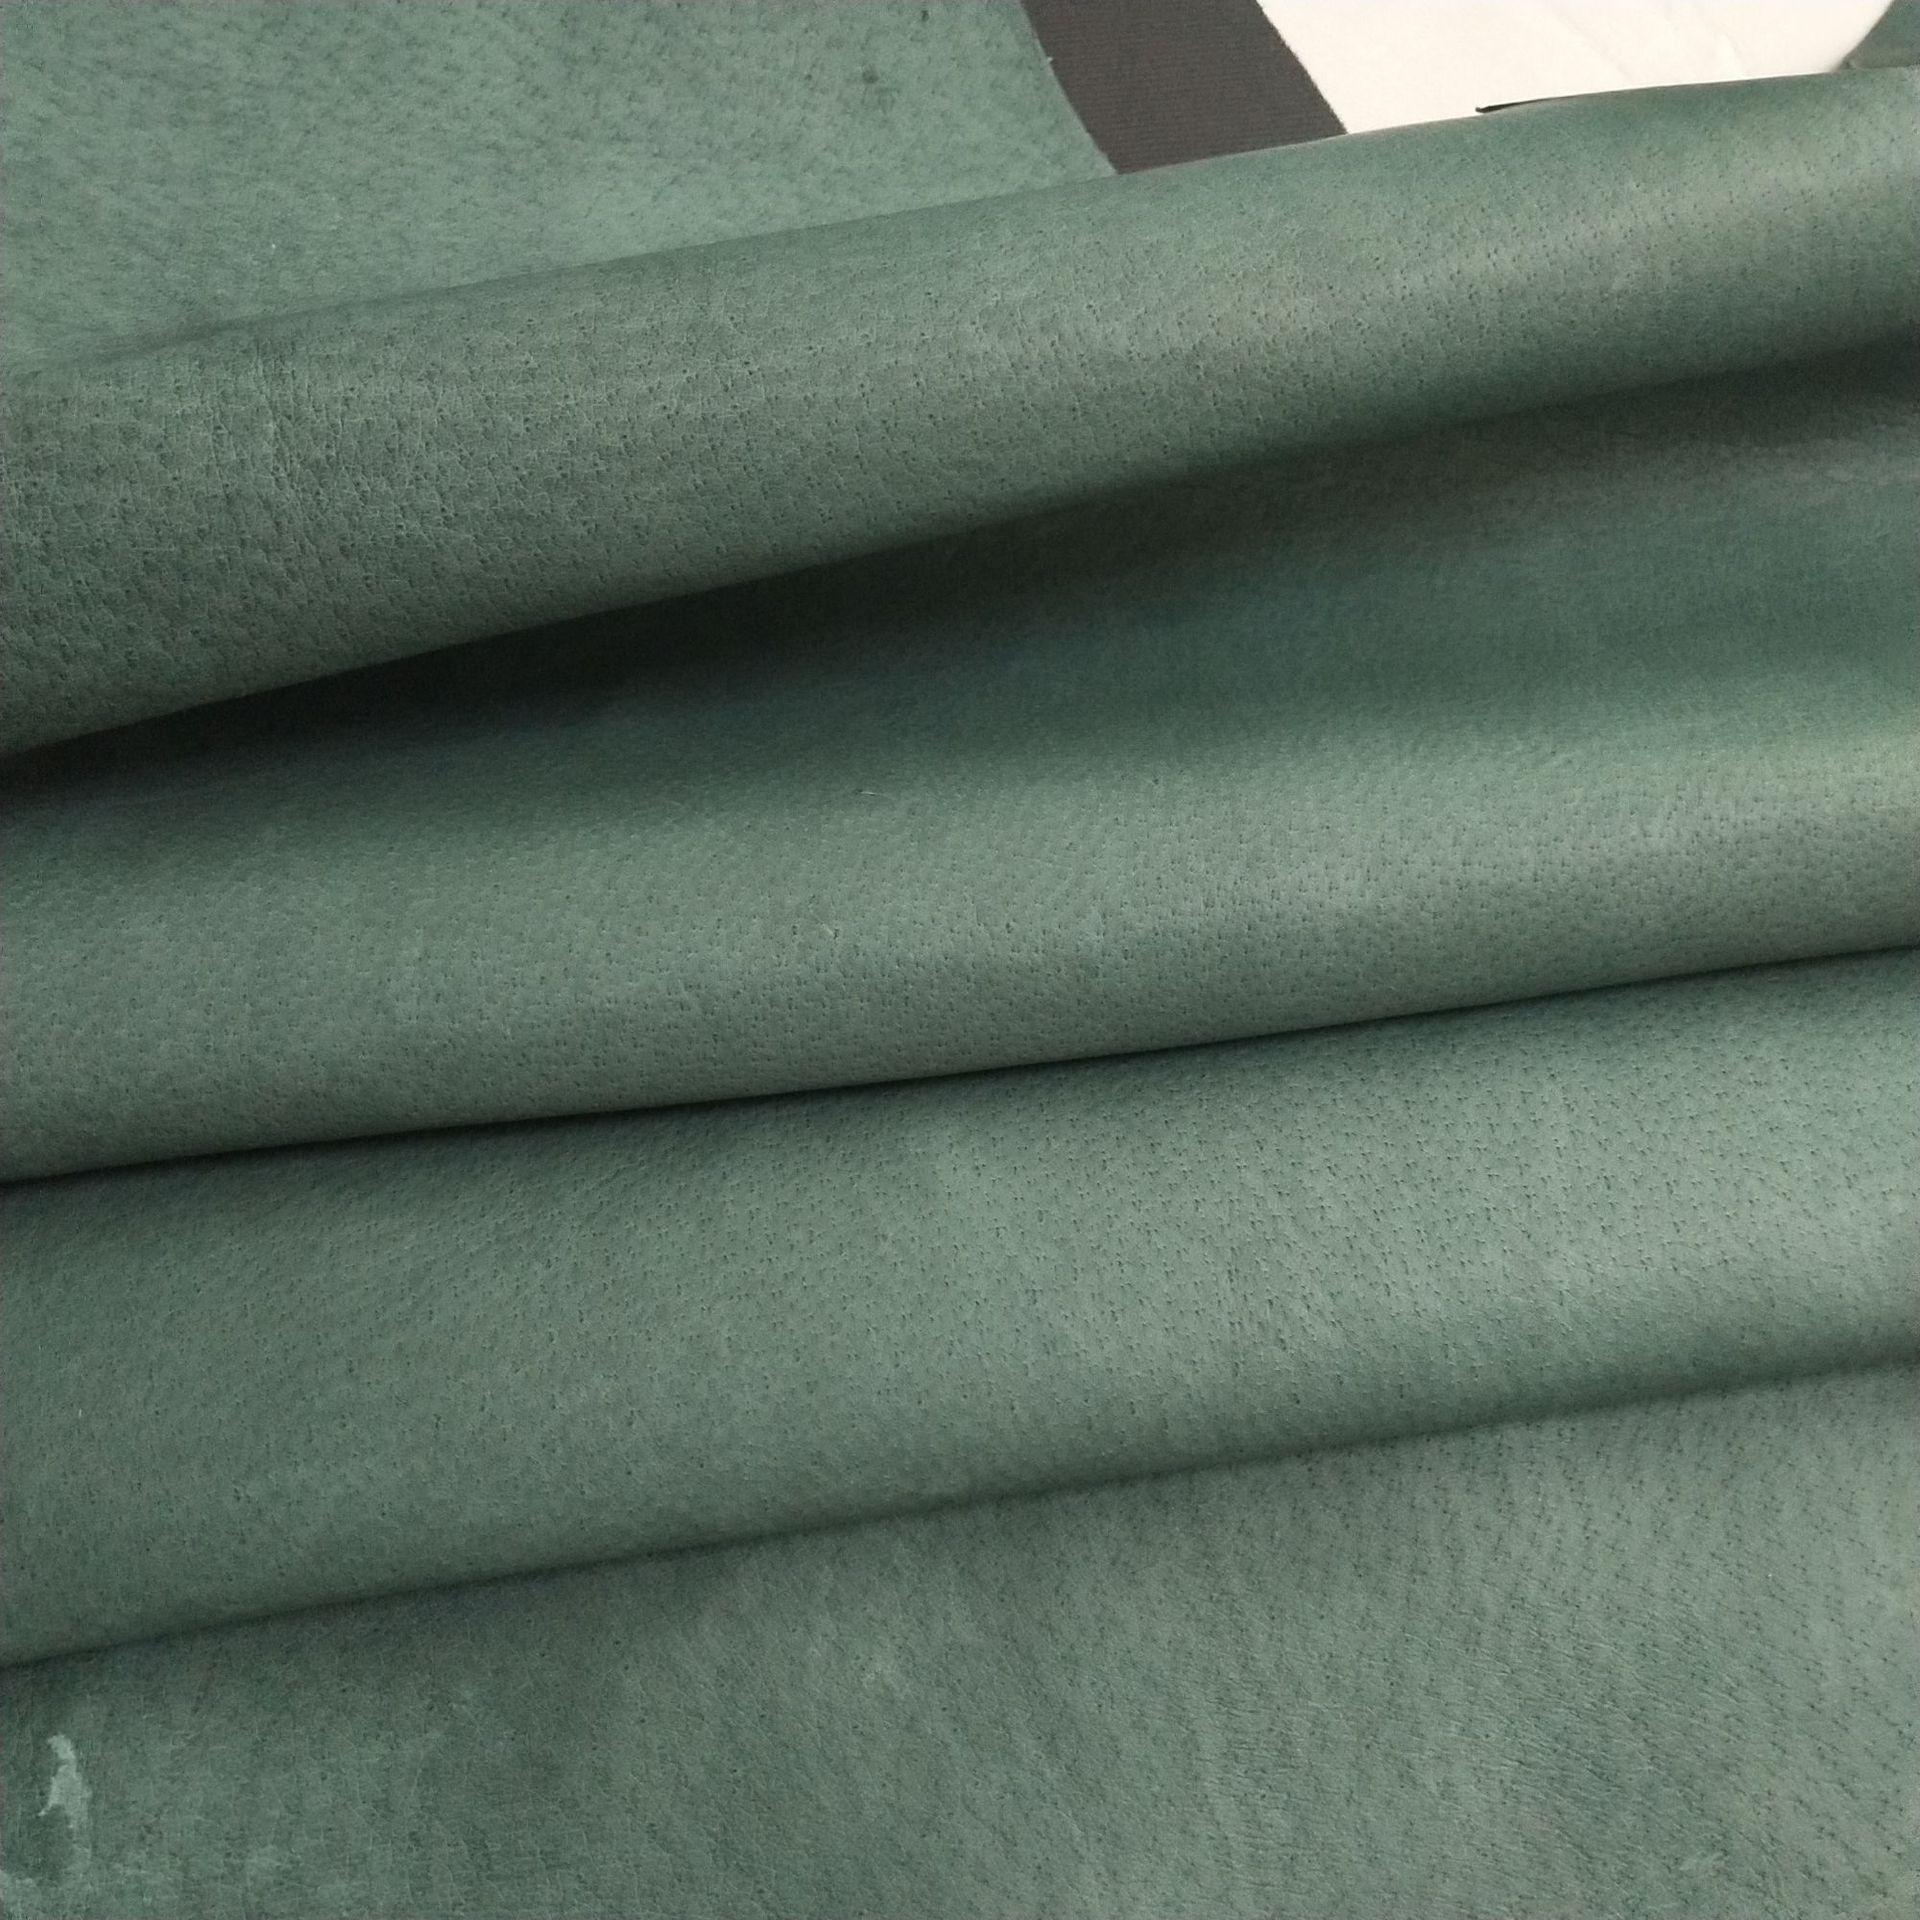 Pigskin leather leather, first layer pigskin lining leather thin leather composite cloth